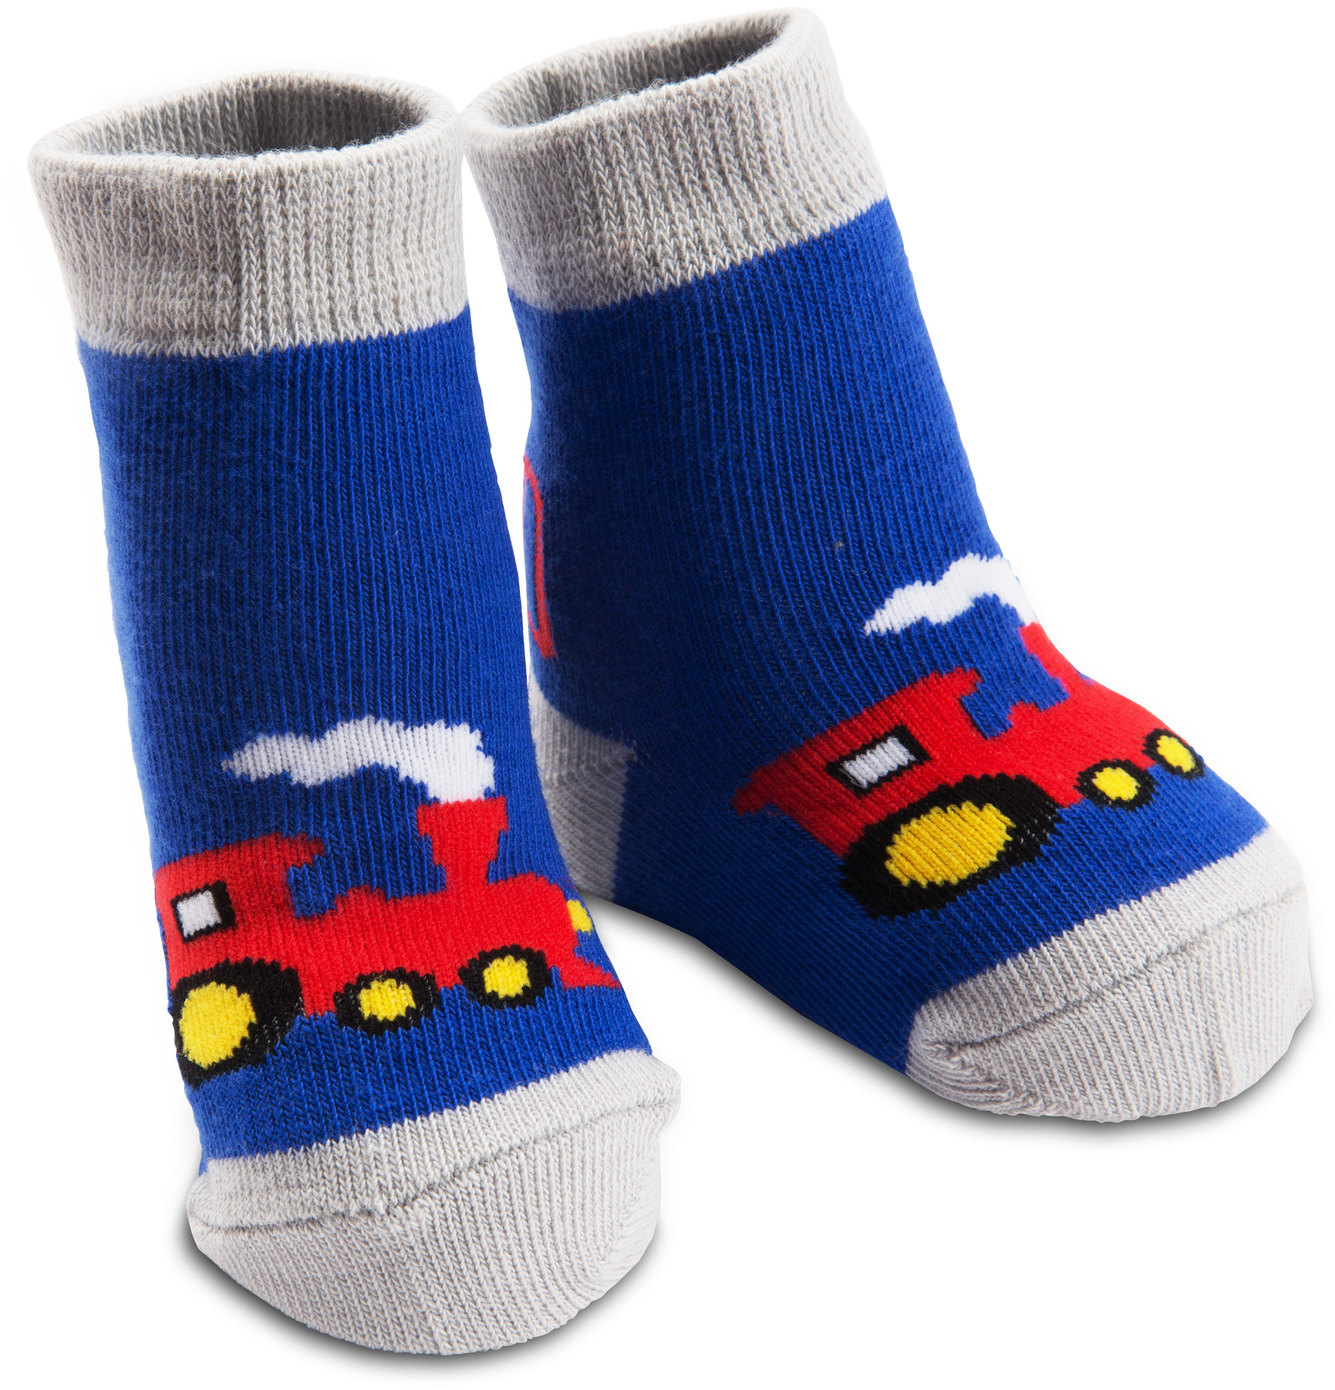 Izzy & Owie - Blue Train Baby Socks 0-12 Months